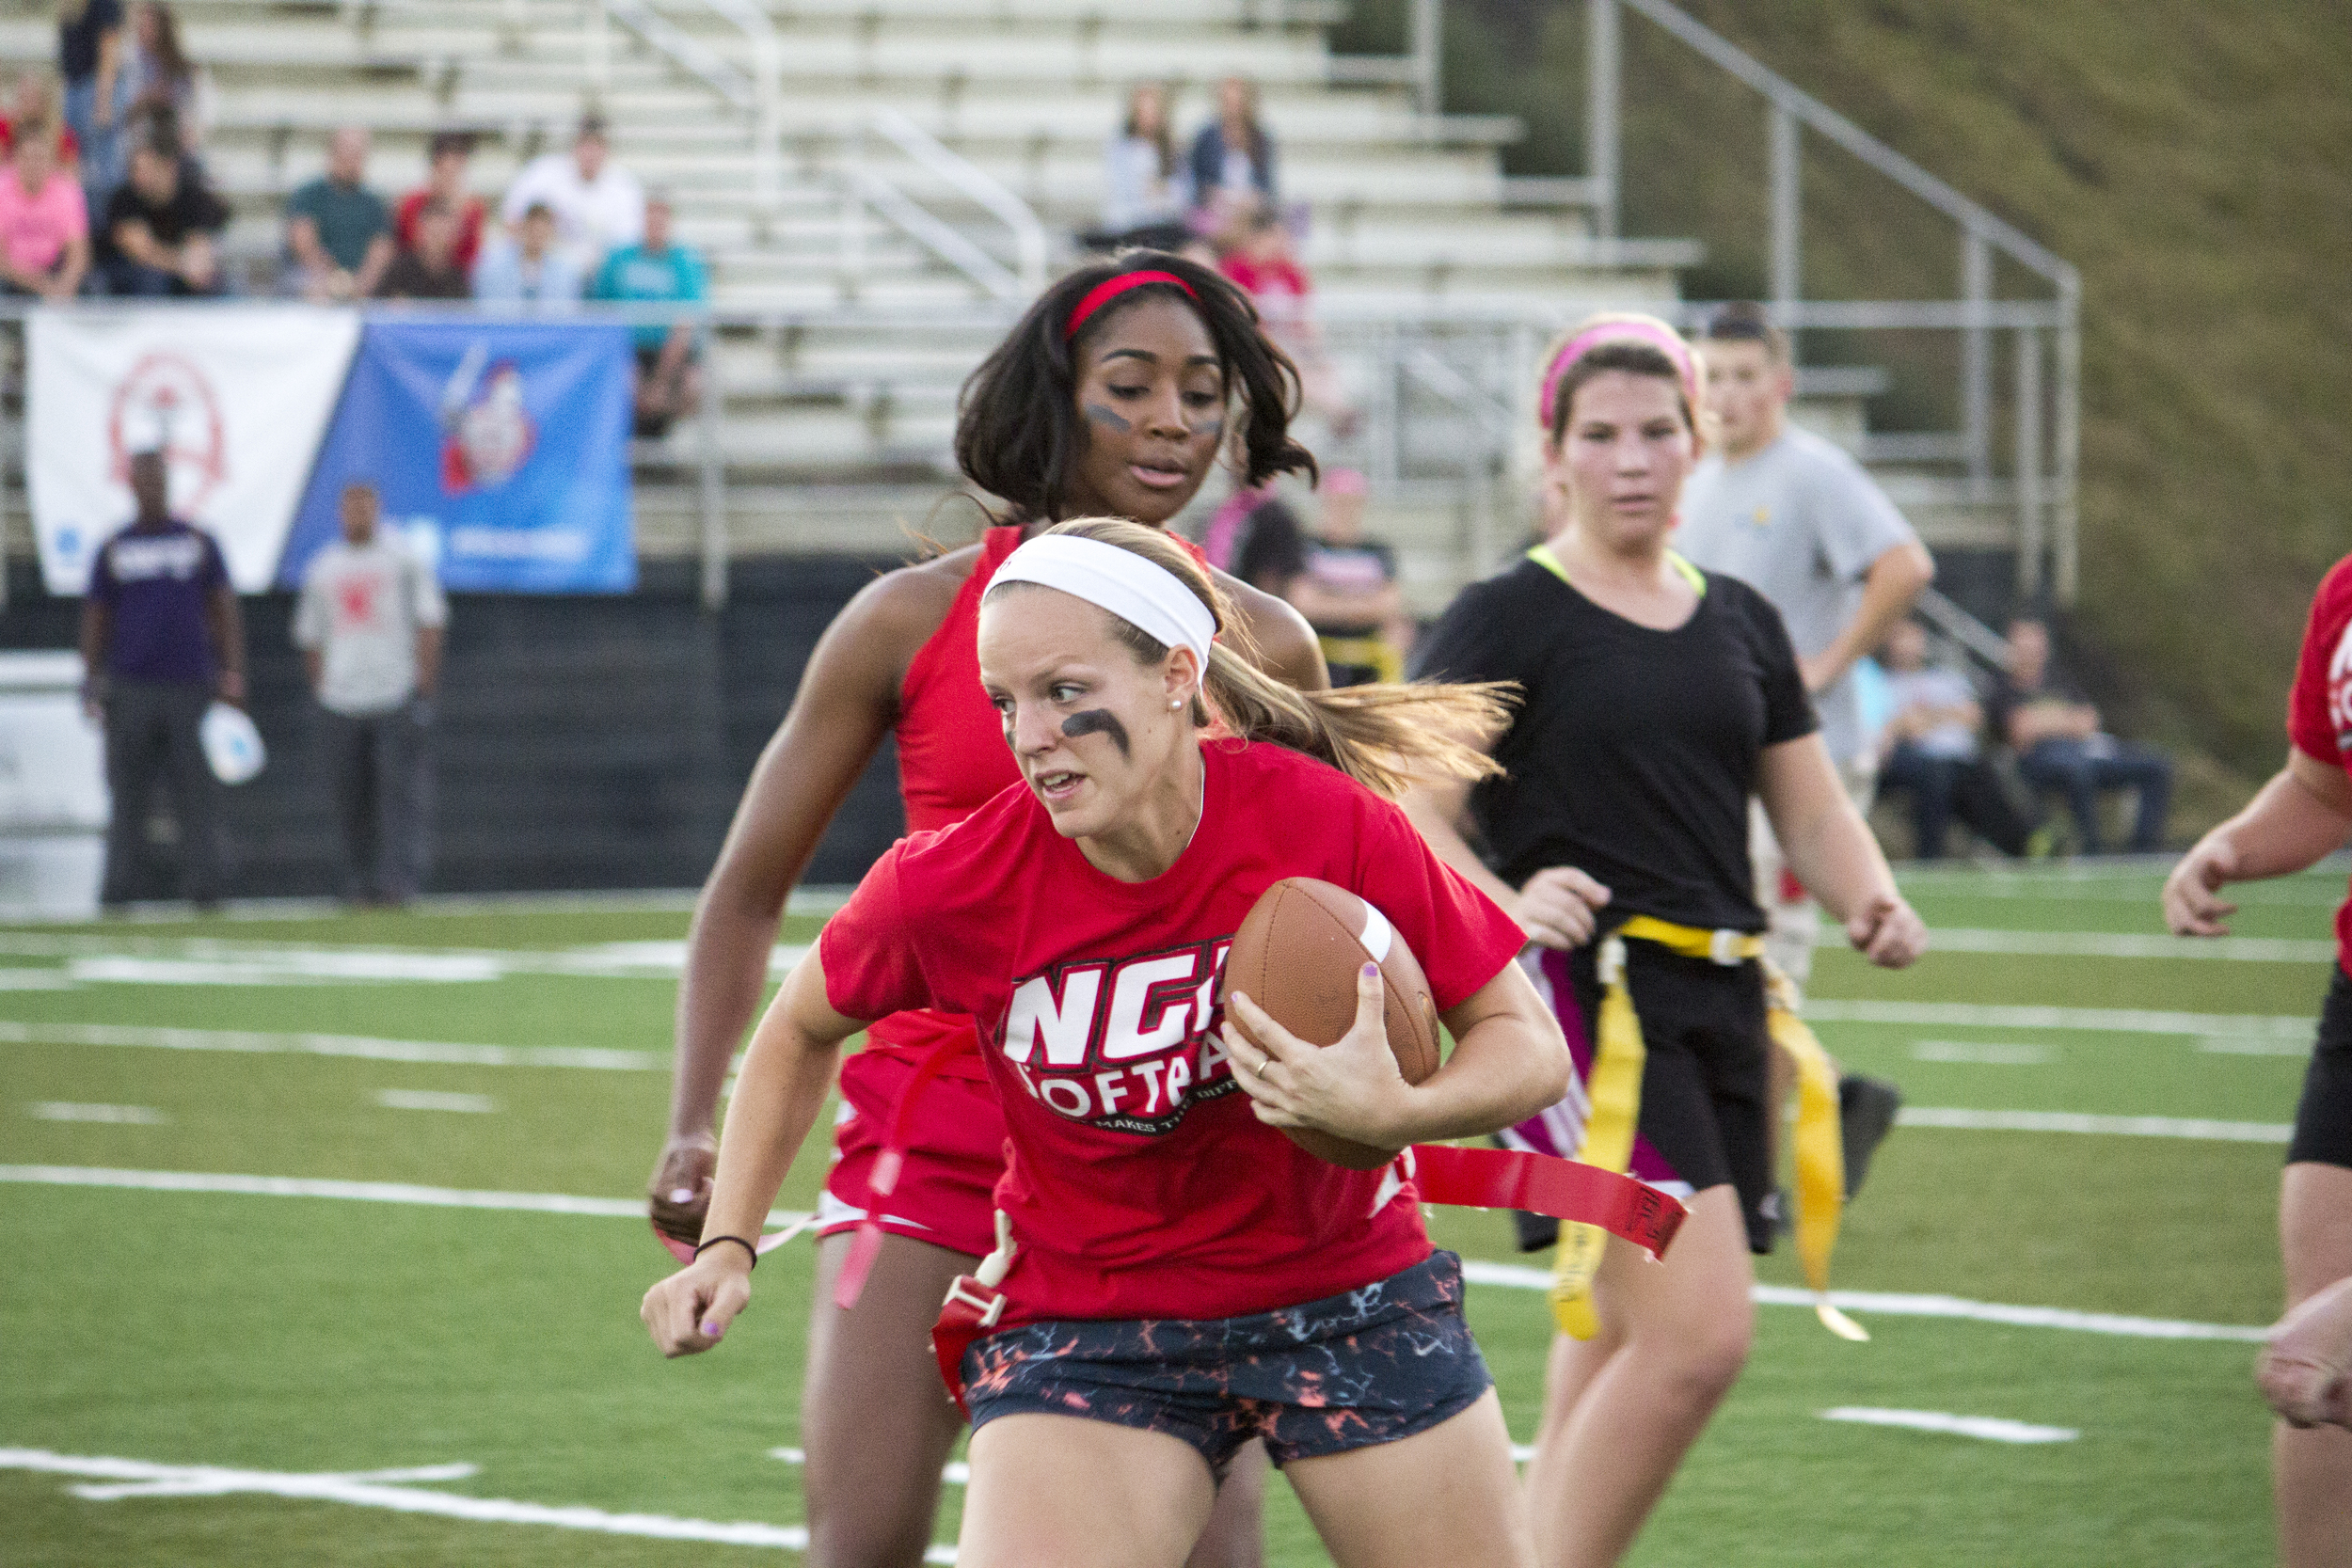 Senior Sarah Armstrong runs with determination down the left side of the field.